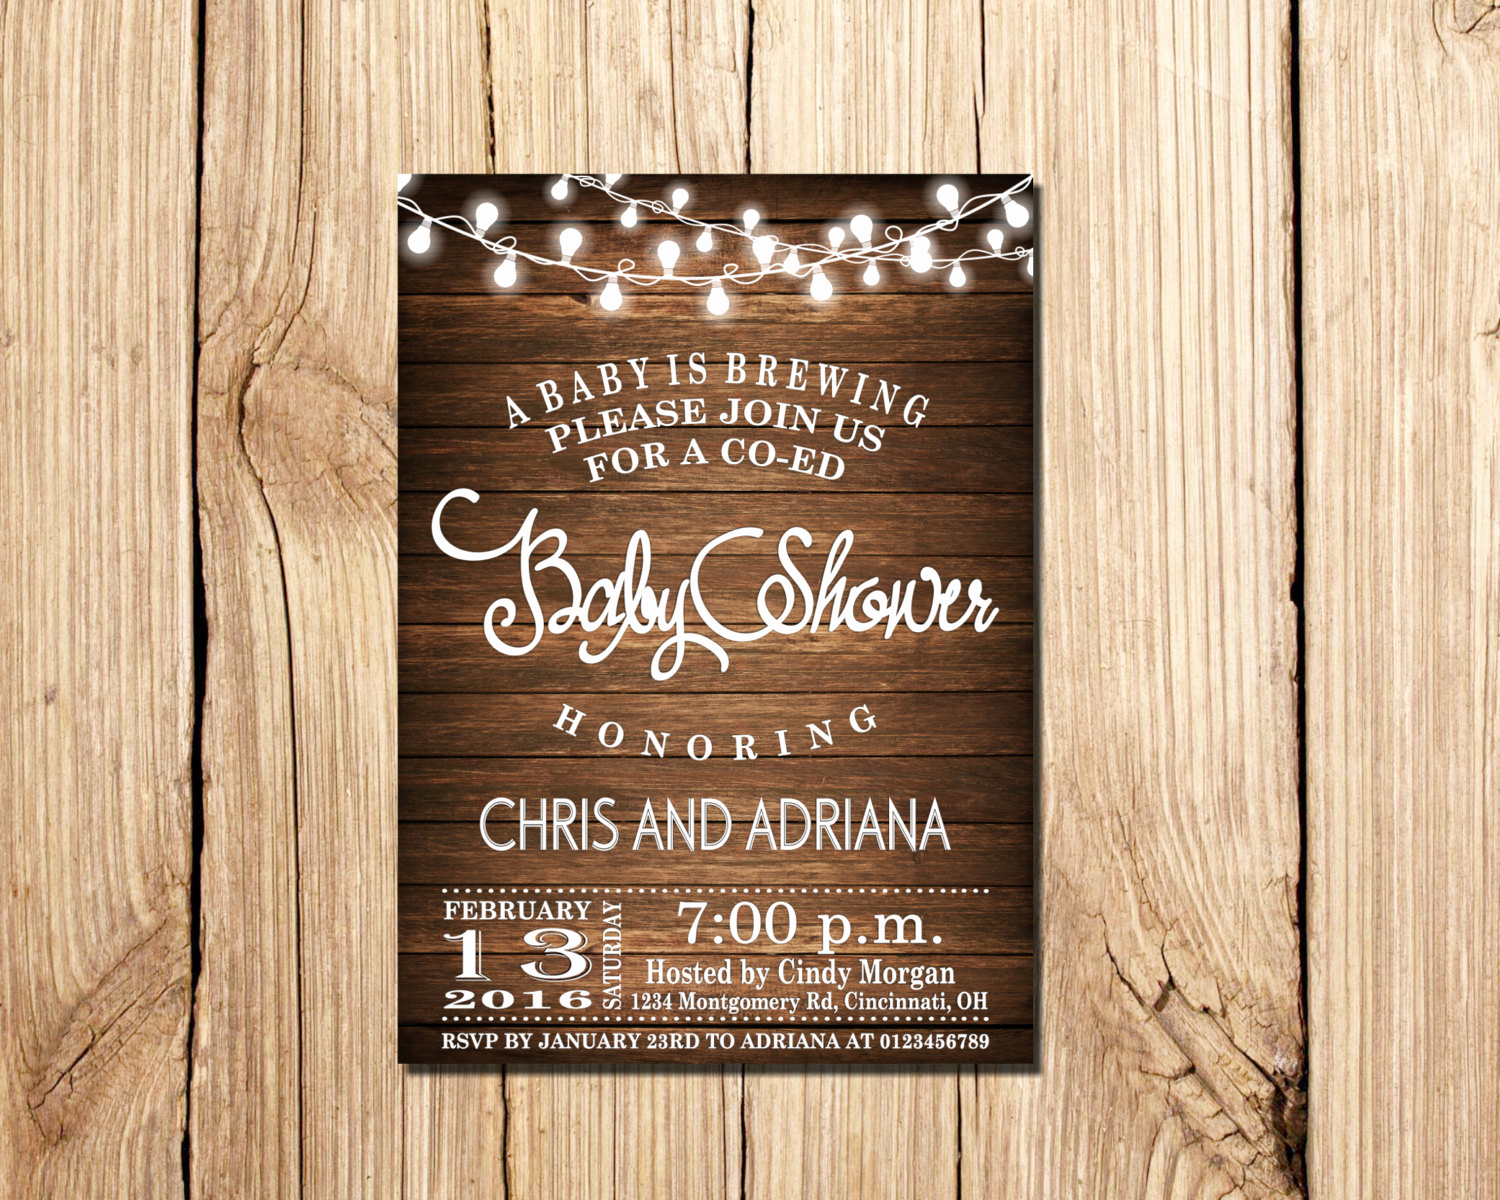 Co Ed Baby Shower Invitation Lovely A Baby is Brewing Baby Shower Invitation Co Ed Baby Shower